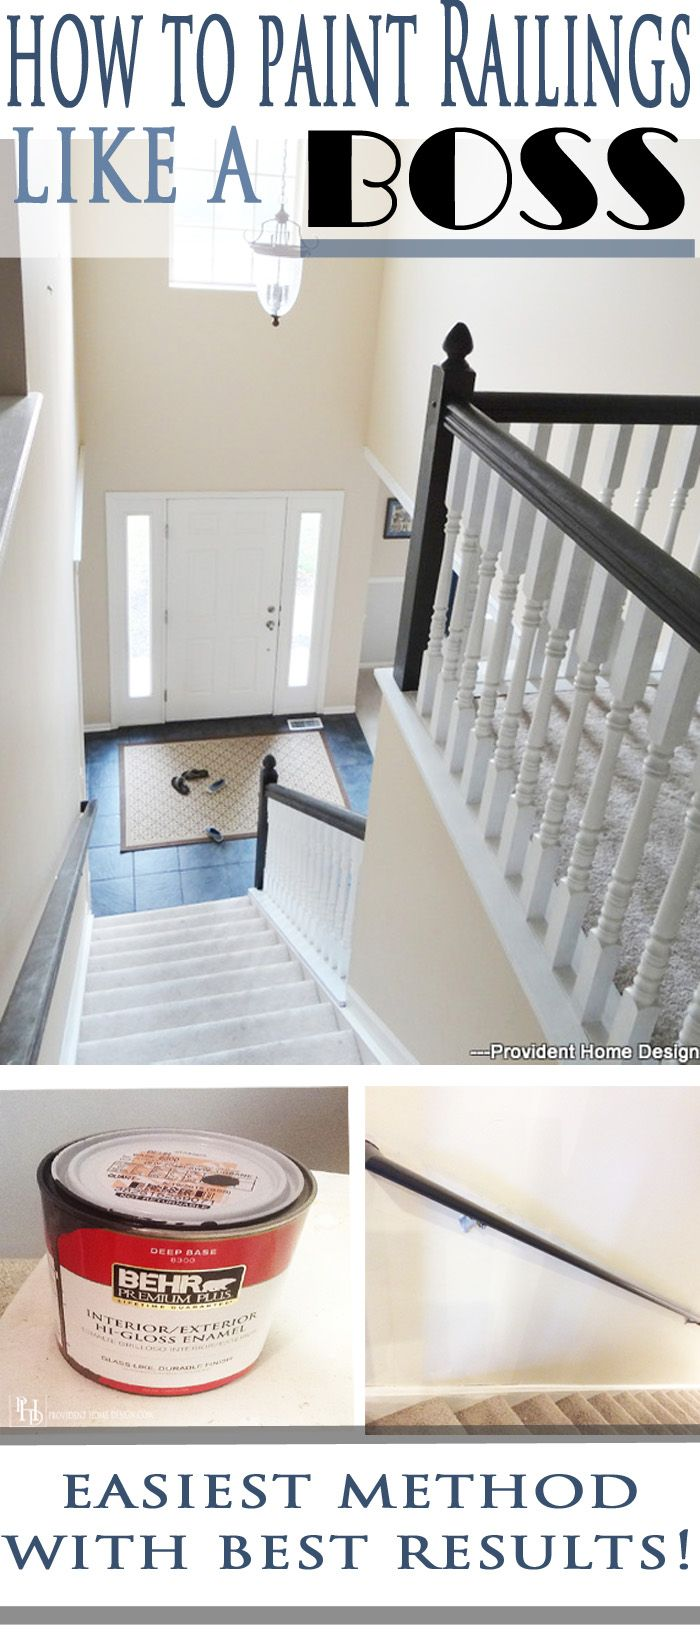 This Is By Far The Easiest Method Of Painting Stair Railings (no Sanding Or  Priming Needed) And With Flawless Results!! Provident Home Design Will  Teach You ...